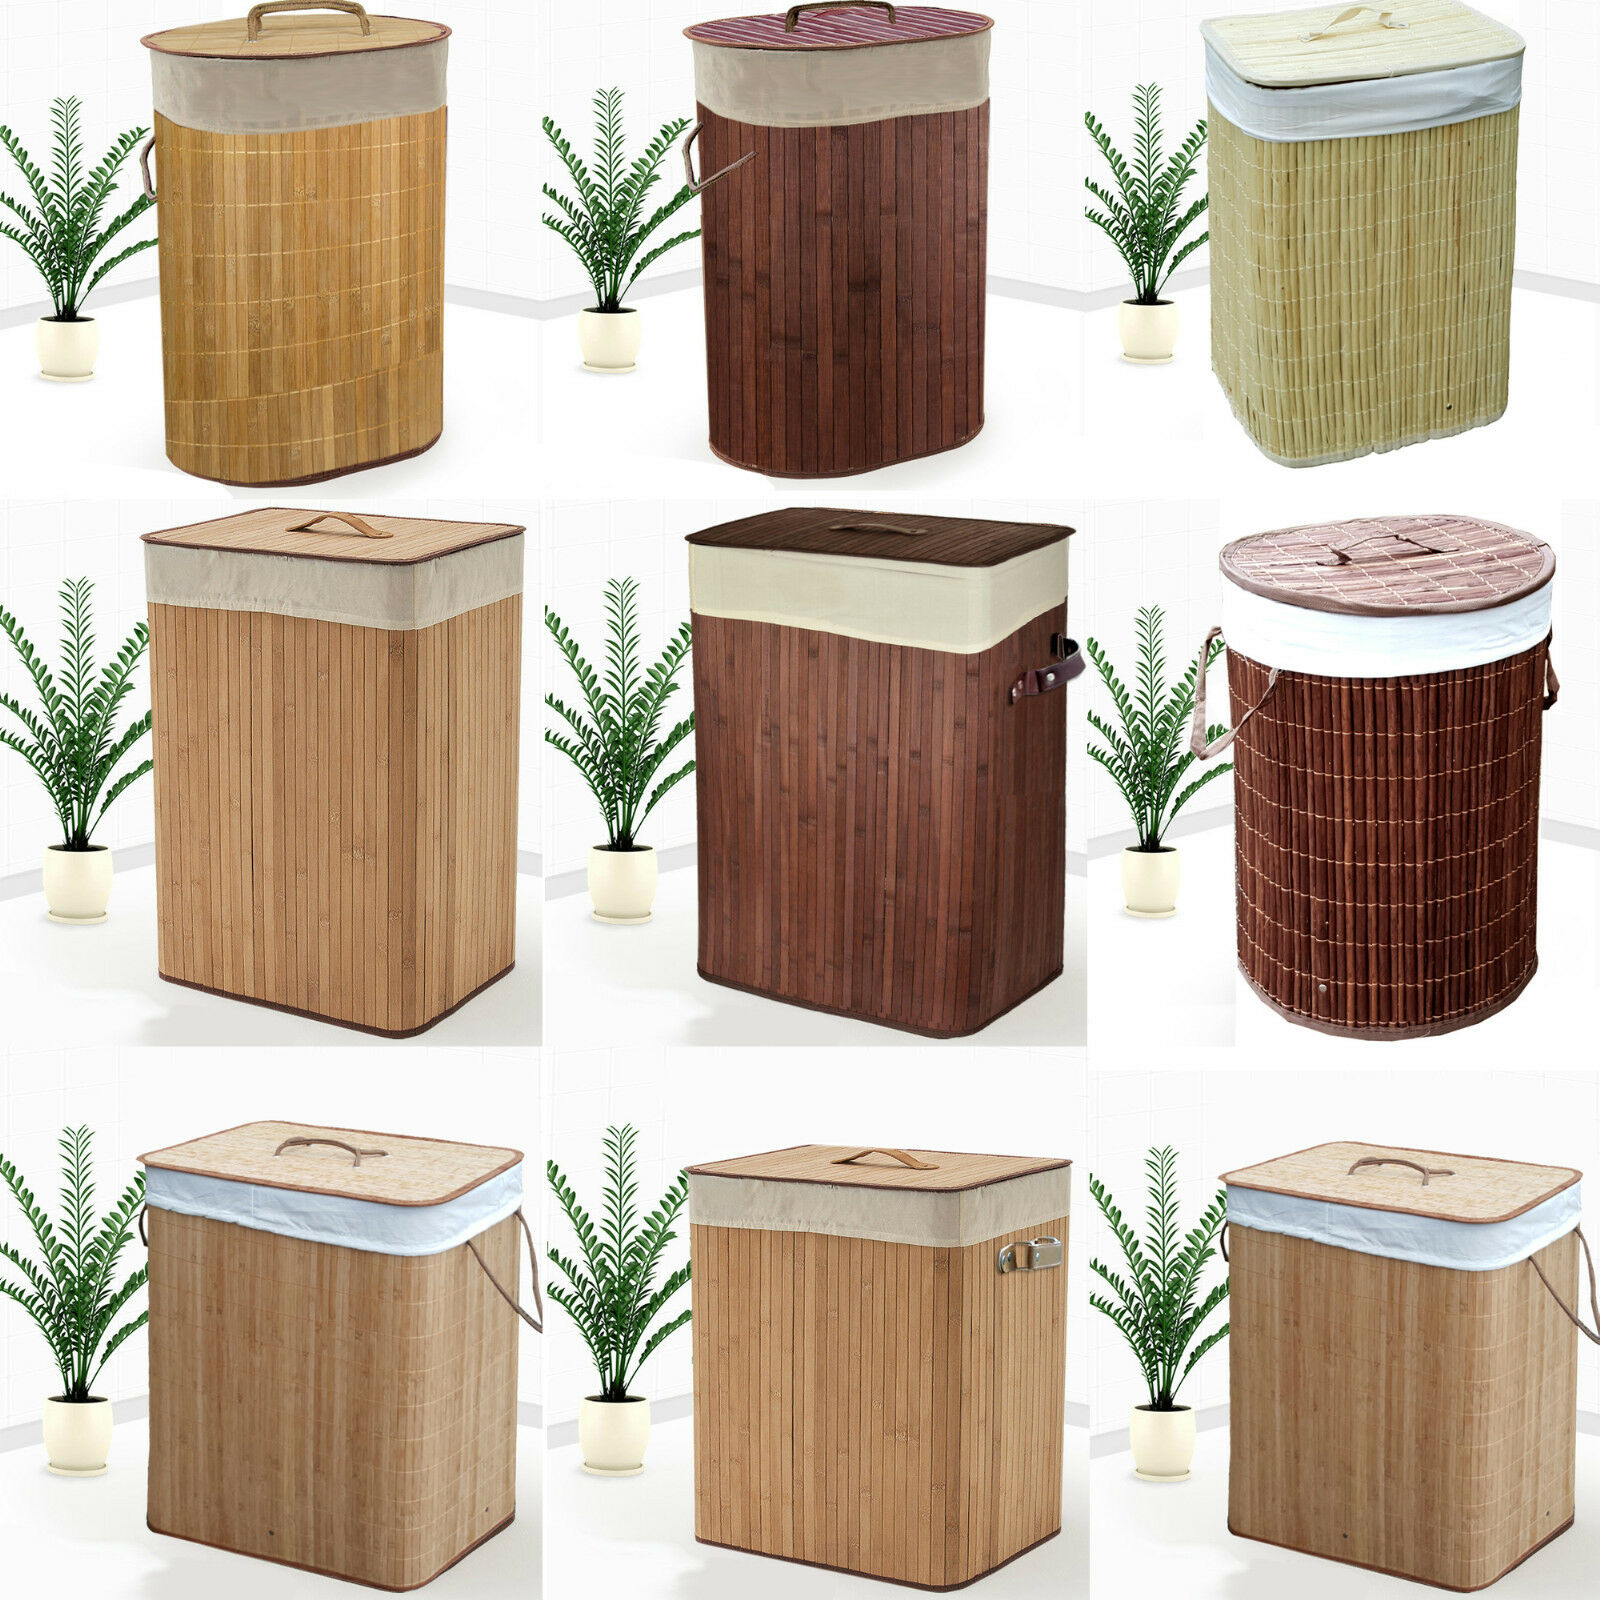 Large medium folding bamboo laundry basket hamper bin lidded storage clothes bag ebay - Bamboo clothes hamper ...